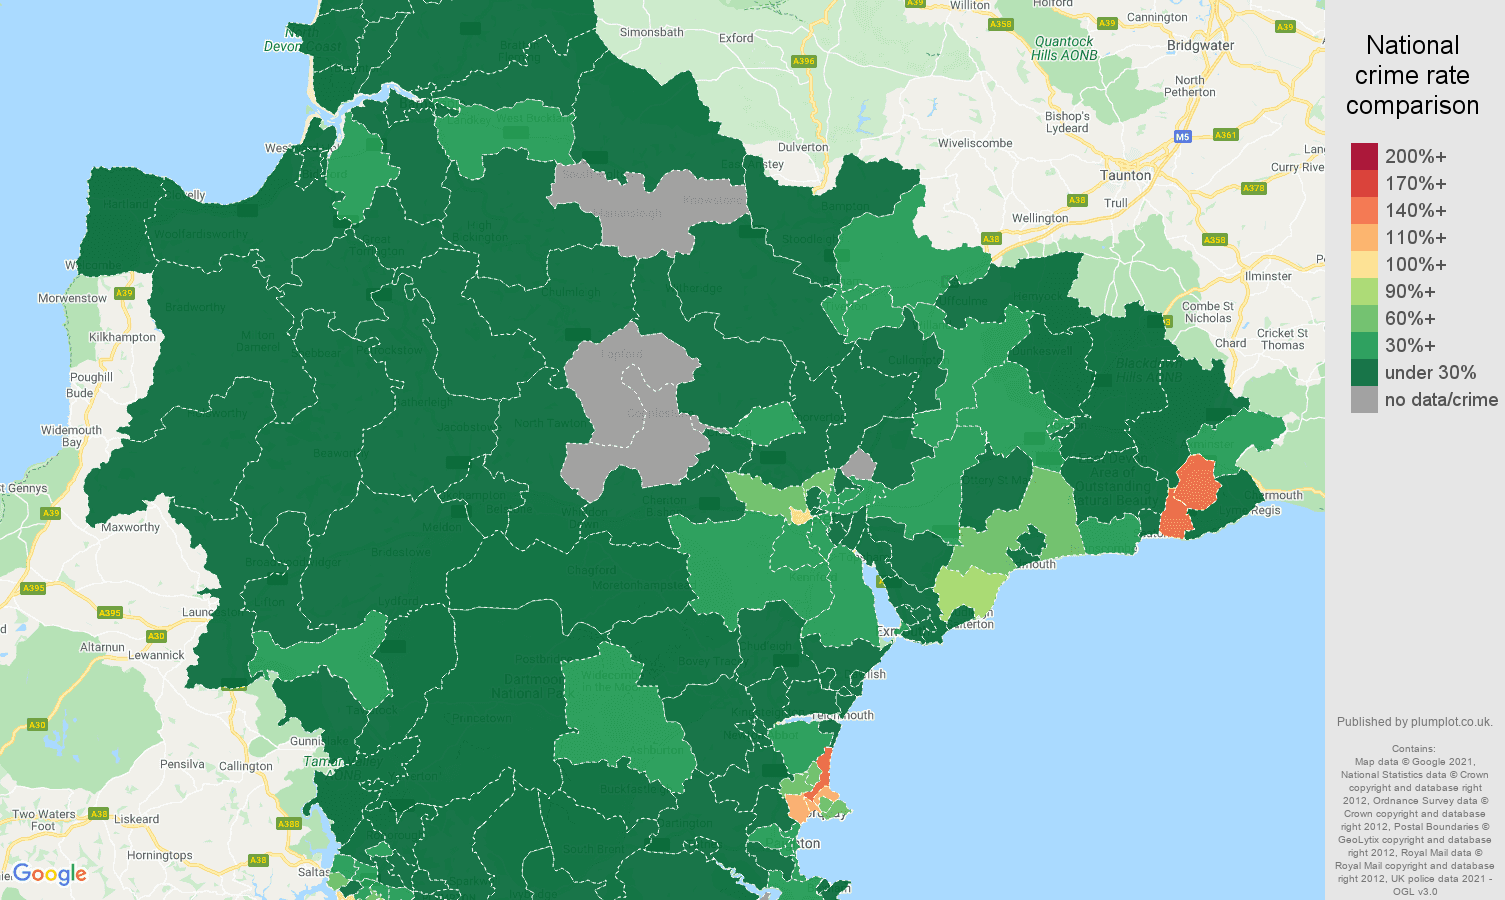 Devon vehicle crime rate comparison map